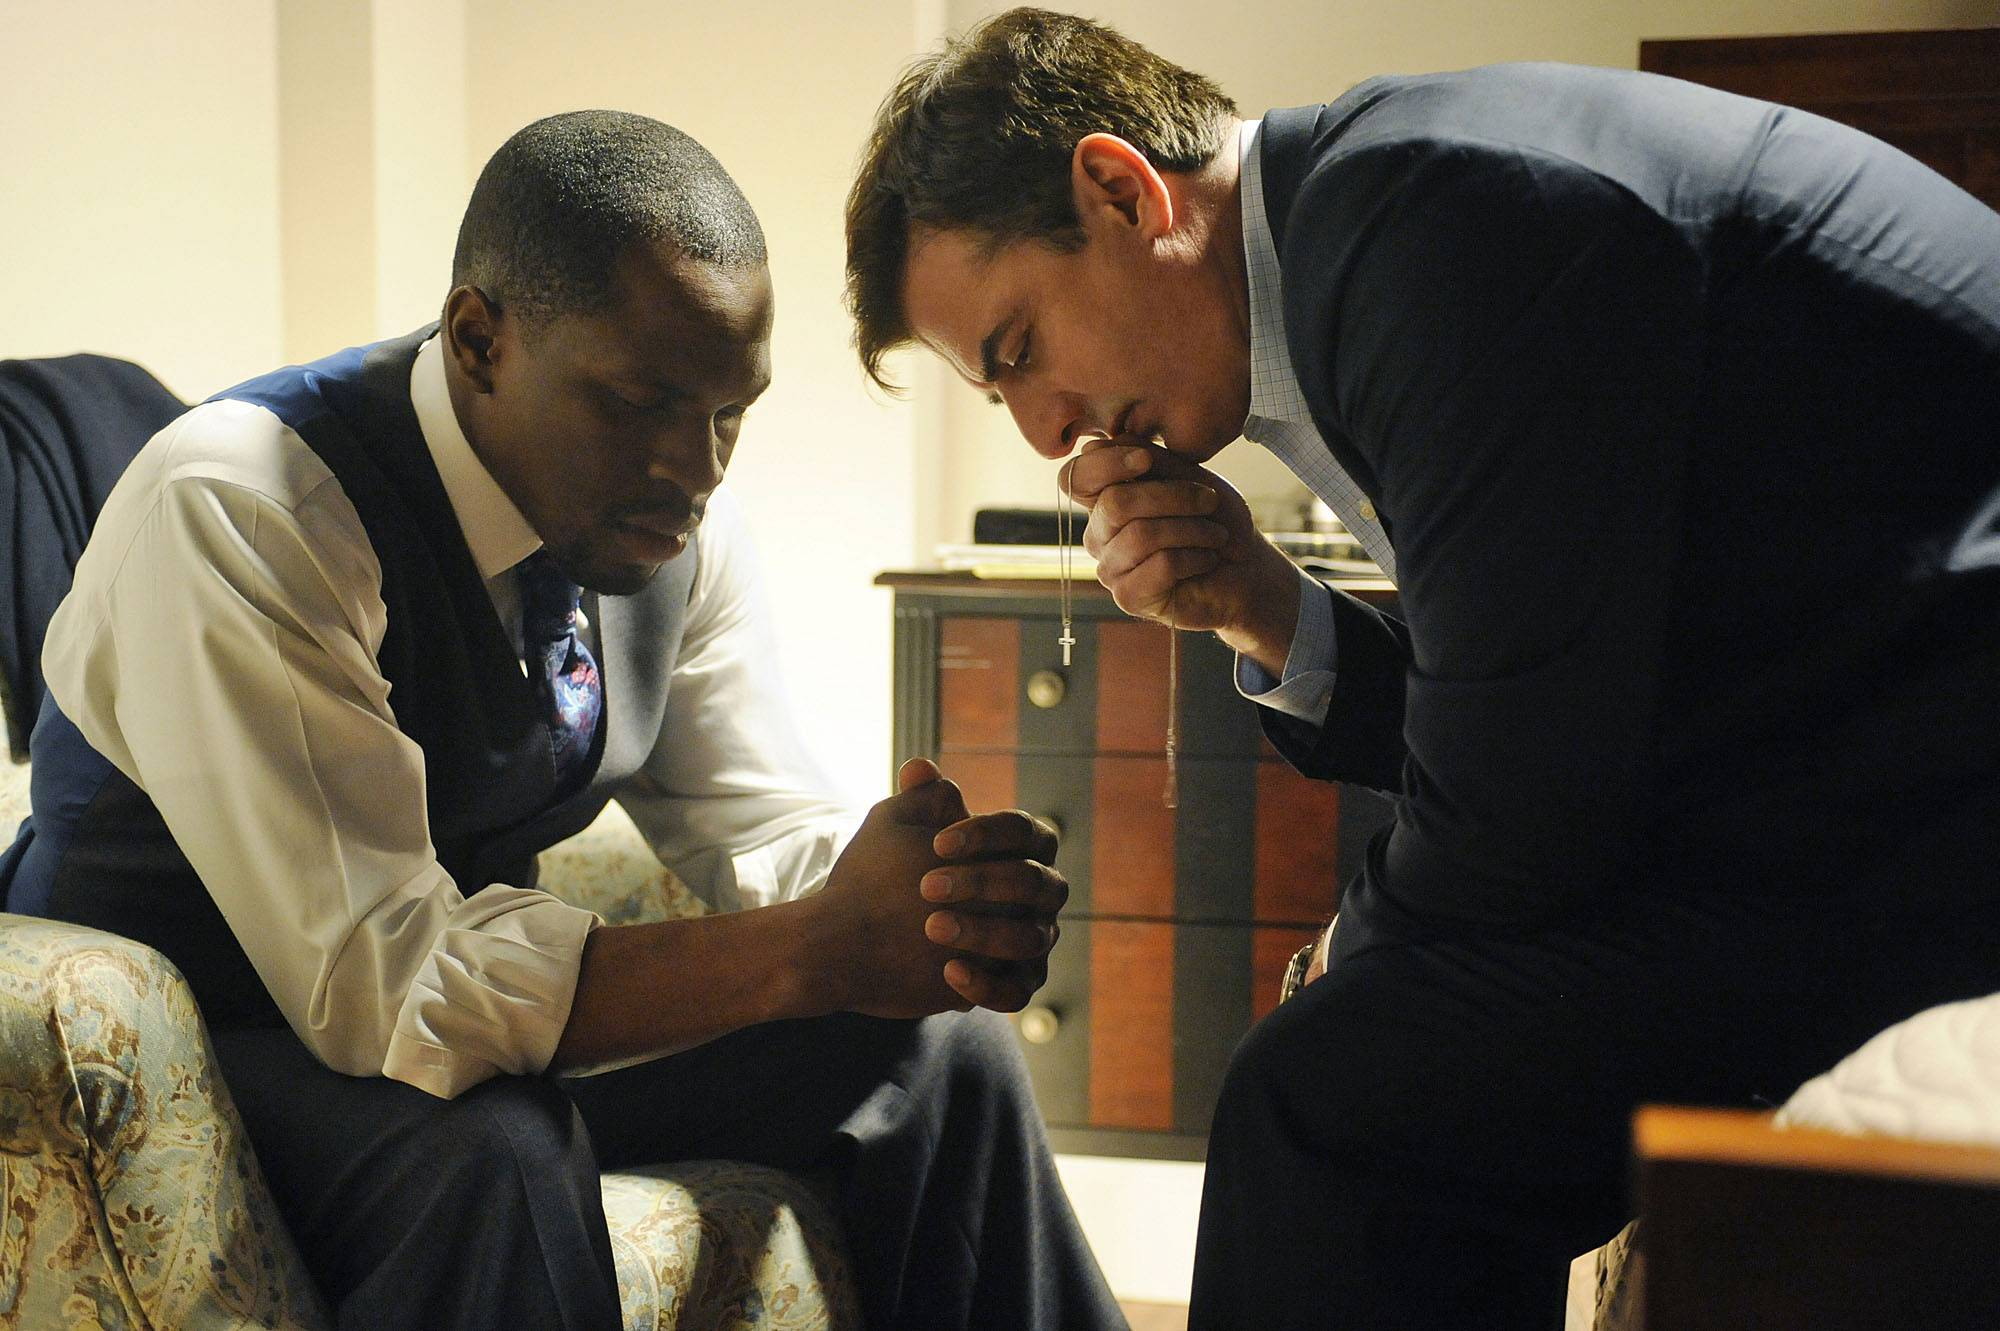 The Good Wife - Most recently Akinnagbe portrayed Pastor Isaiah Easton on the TV series The Good Wife. Here his character speaks to disgraced state's attorney Peter Florrick (played by Chris Noth).(Photo: Jeffrey Neira/CBS)